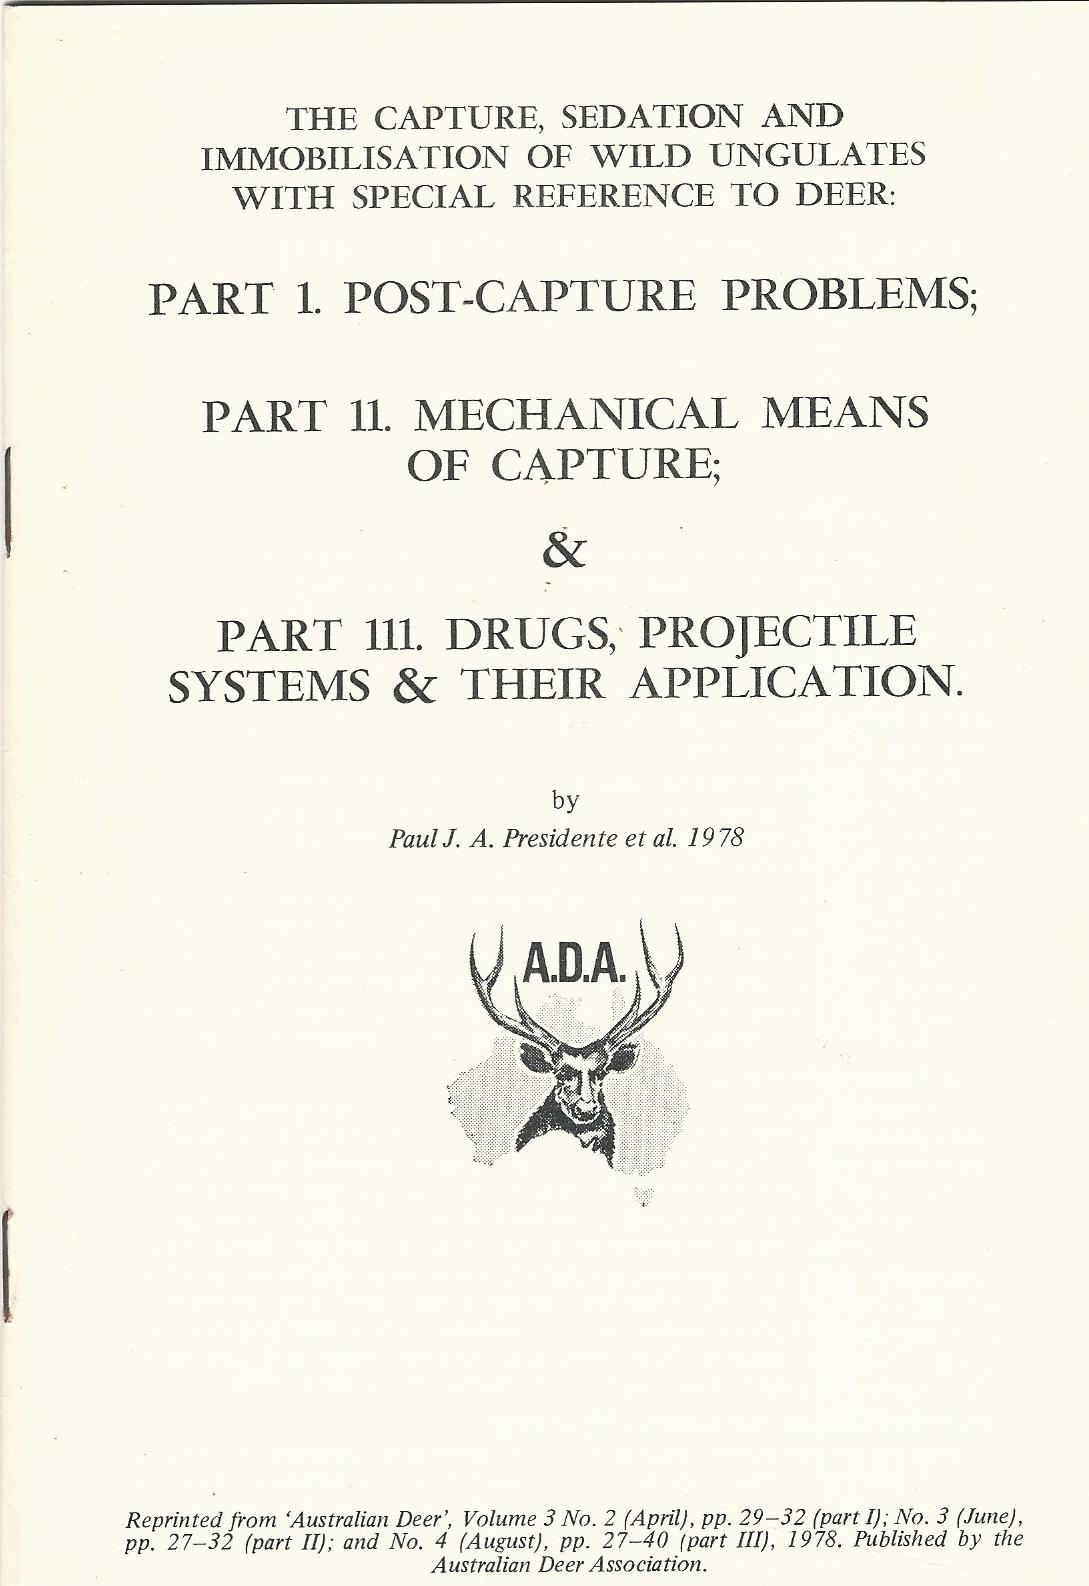 Image for The Capture, Sedation and Immobilisation of Wild Ungulates with Special Reference to Deer: Part I. Post-Capture Problems; Part II. Mechanical Means of Capture; & Part III. Drugs, Projectile Systems & Their Application.